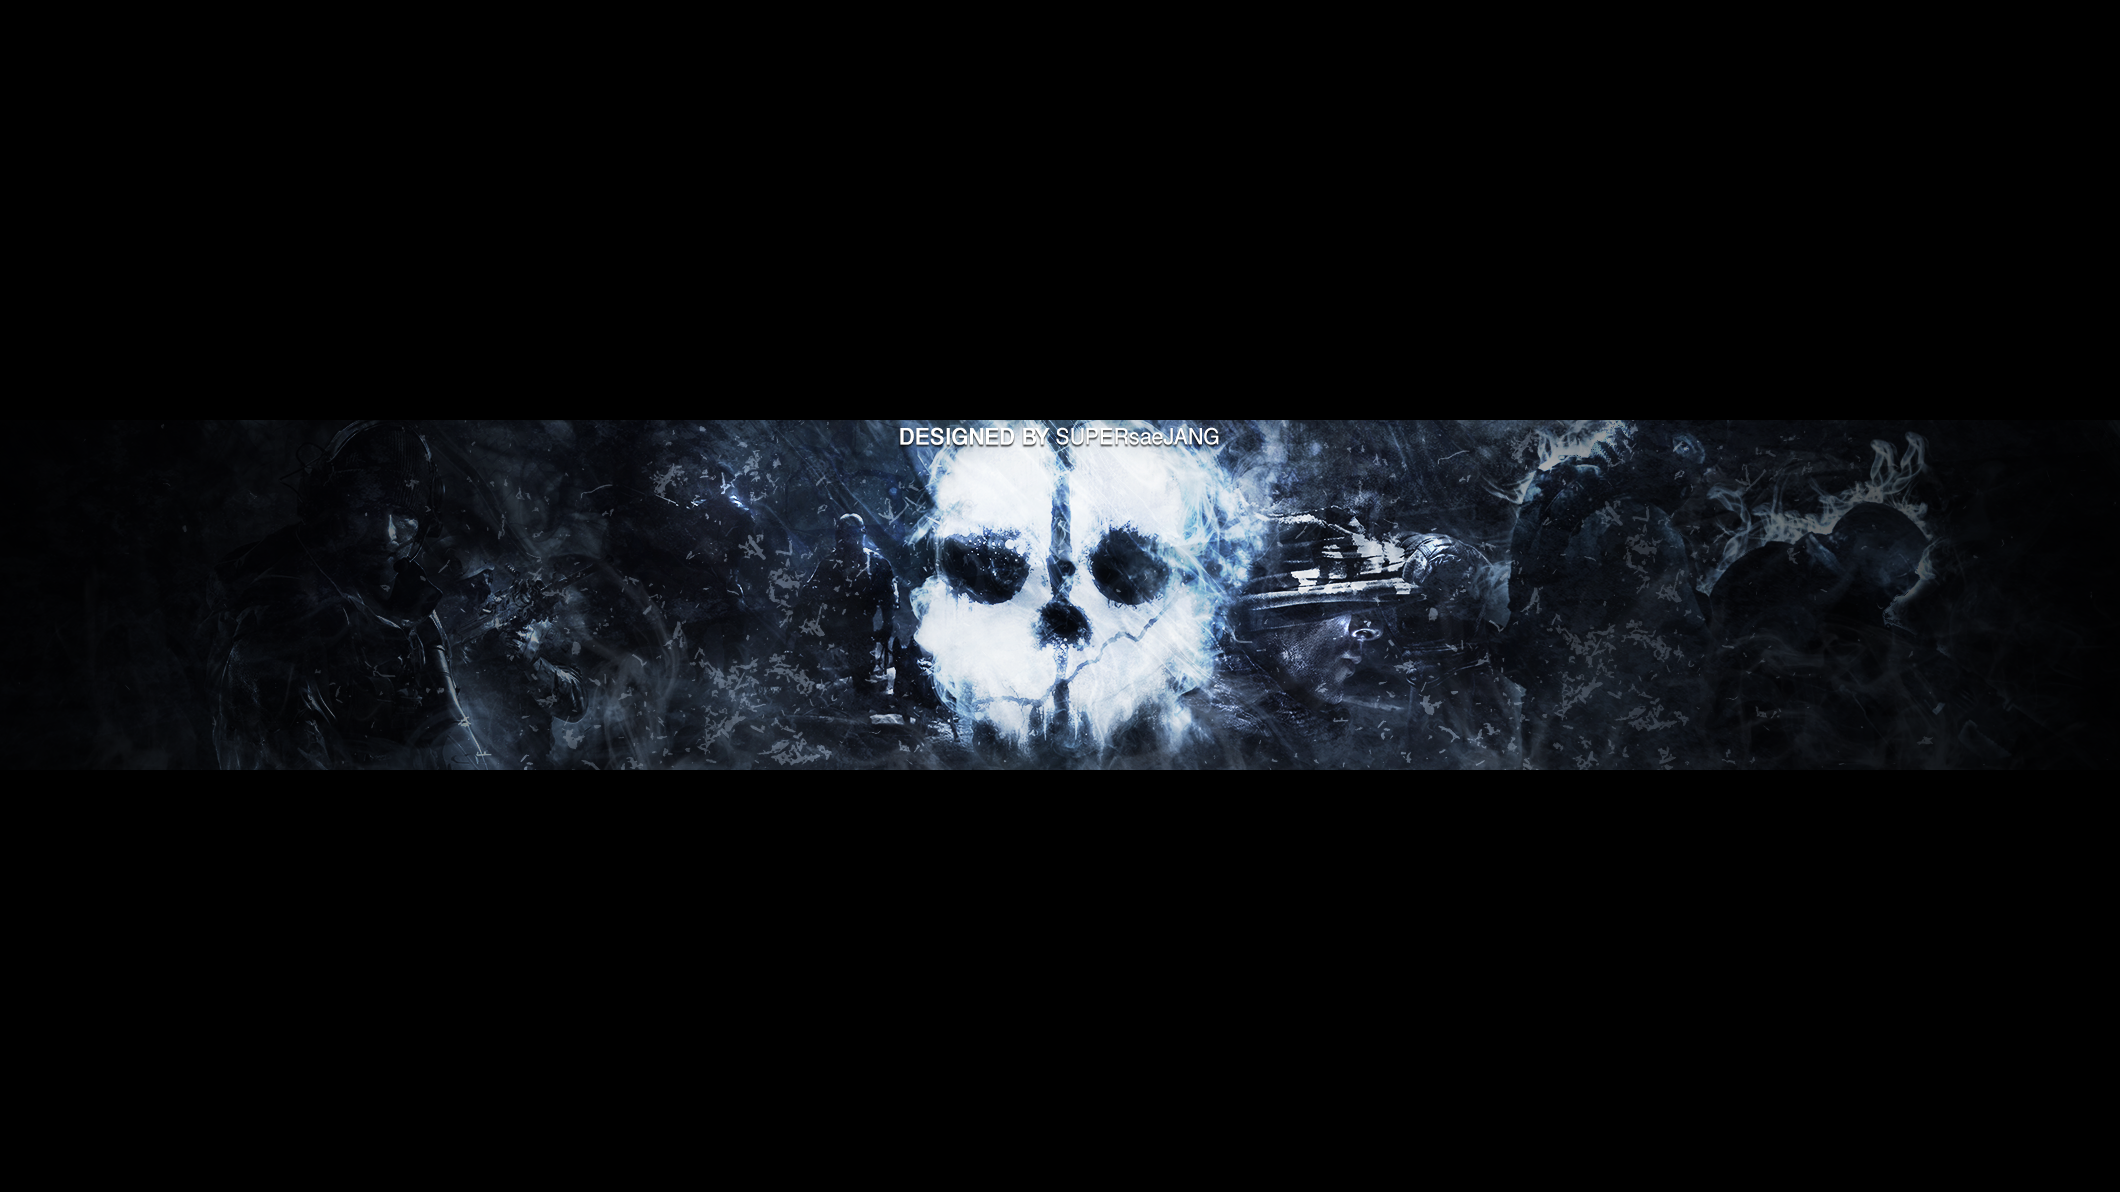 Call of duty ghosts onechannel youtube bg by - Anime background for youtube ...